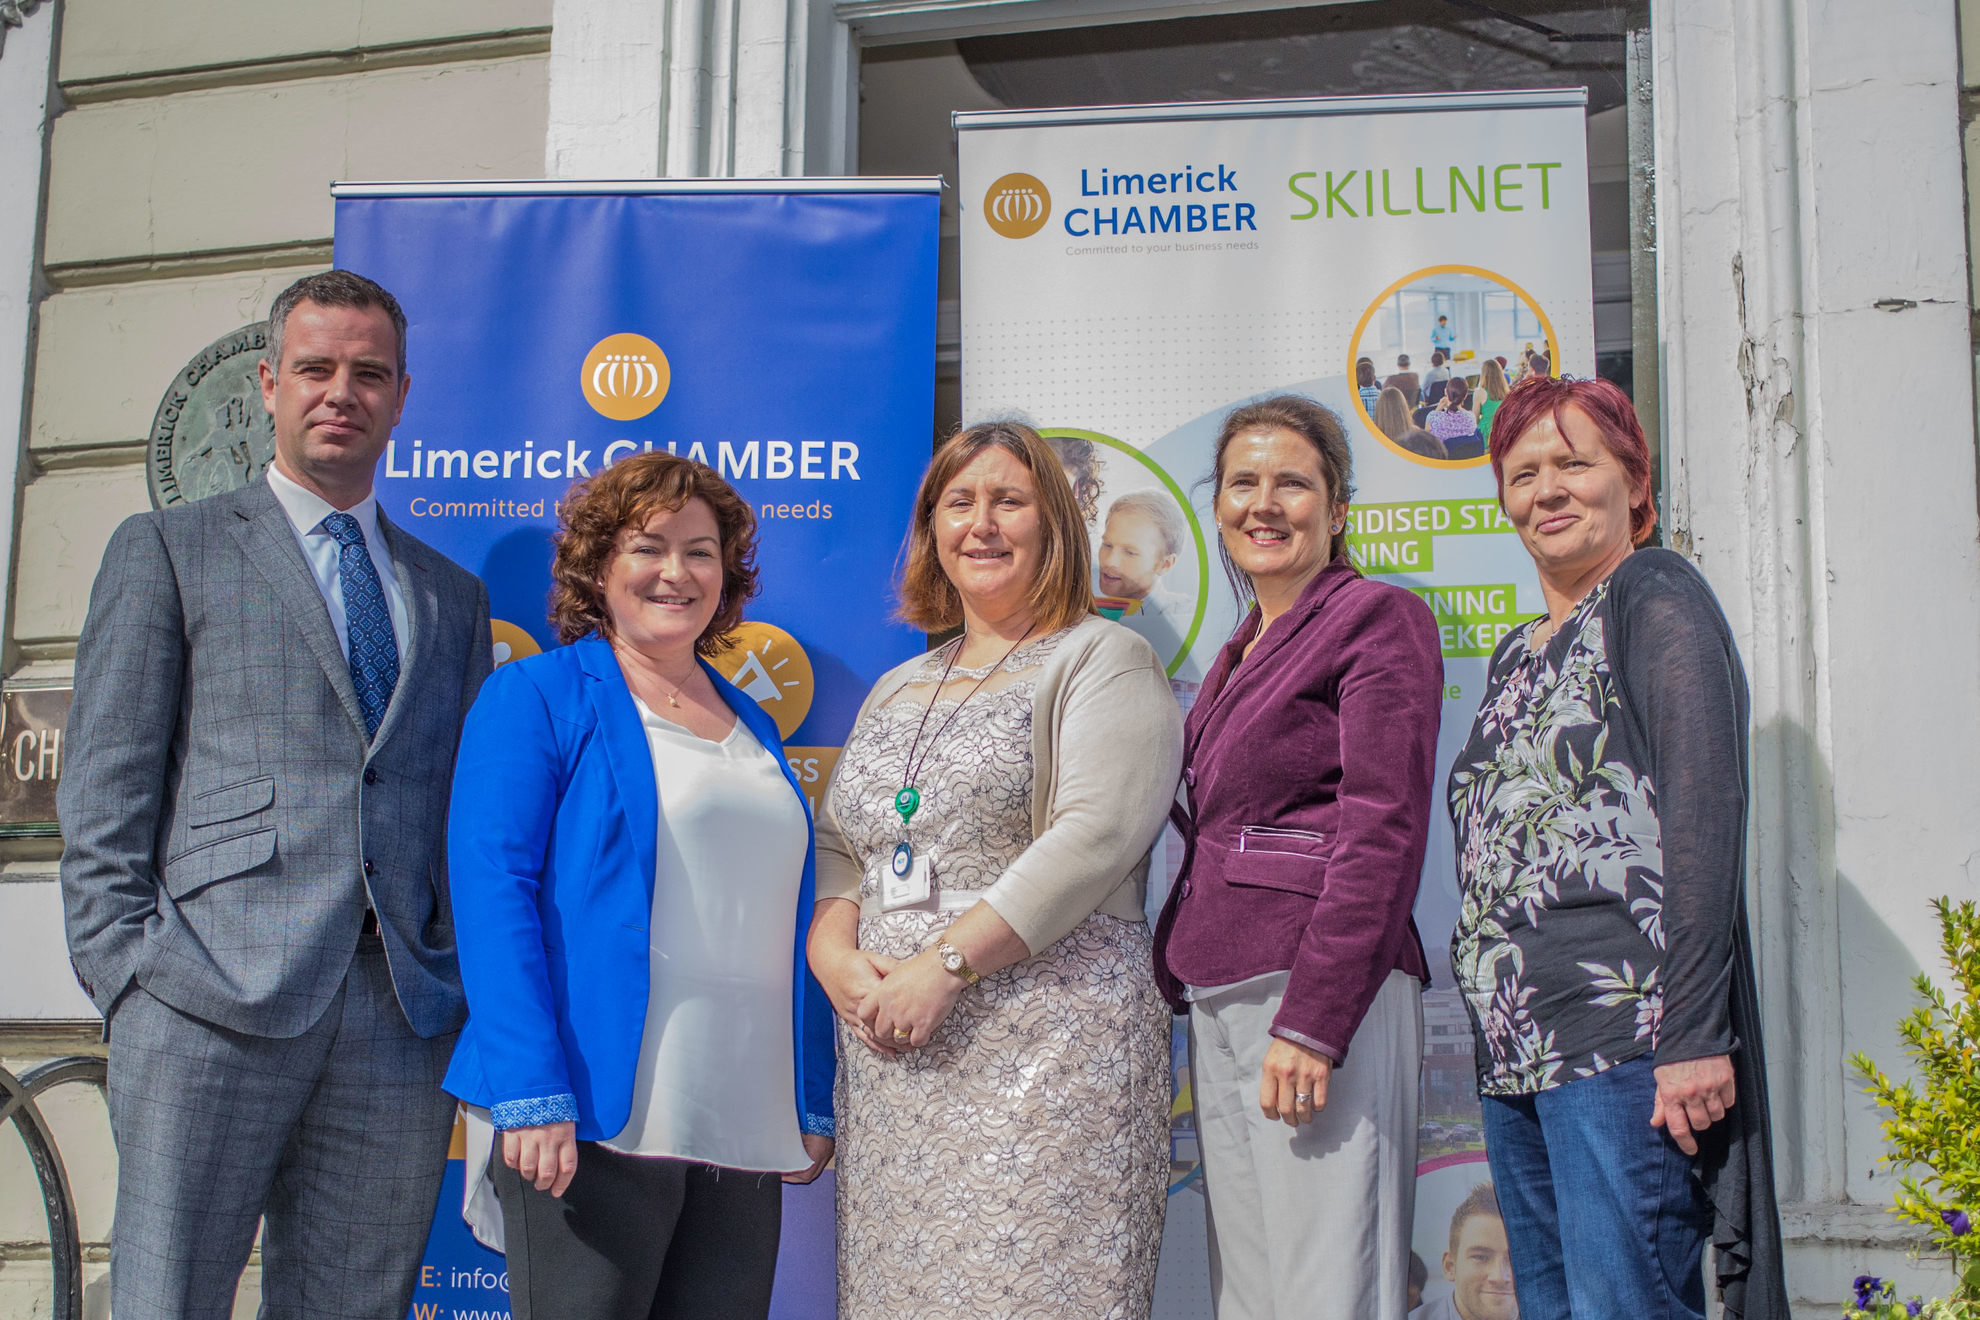 Pictured at the launch of the Limerick Jobs Fair sponsored by the Limerick Chamber, Limerick Chamber Skillnet and the Department of Social protection wereDr James Ring, Limerick Chamber, Rachel Joyce, Limerick Chamber Skillnet, Catherine Hurley, Department of Social Protection, Anne Morris, Limerick Chamber Skillnet and Mary Penny, Department of Social Protection. picture: Cian Reinhardt/ilovelimerick